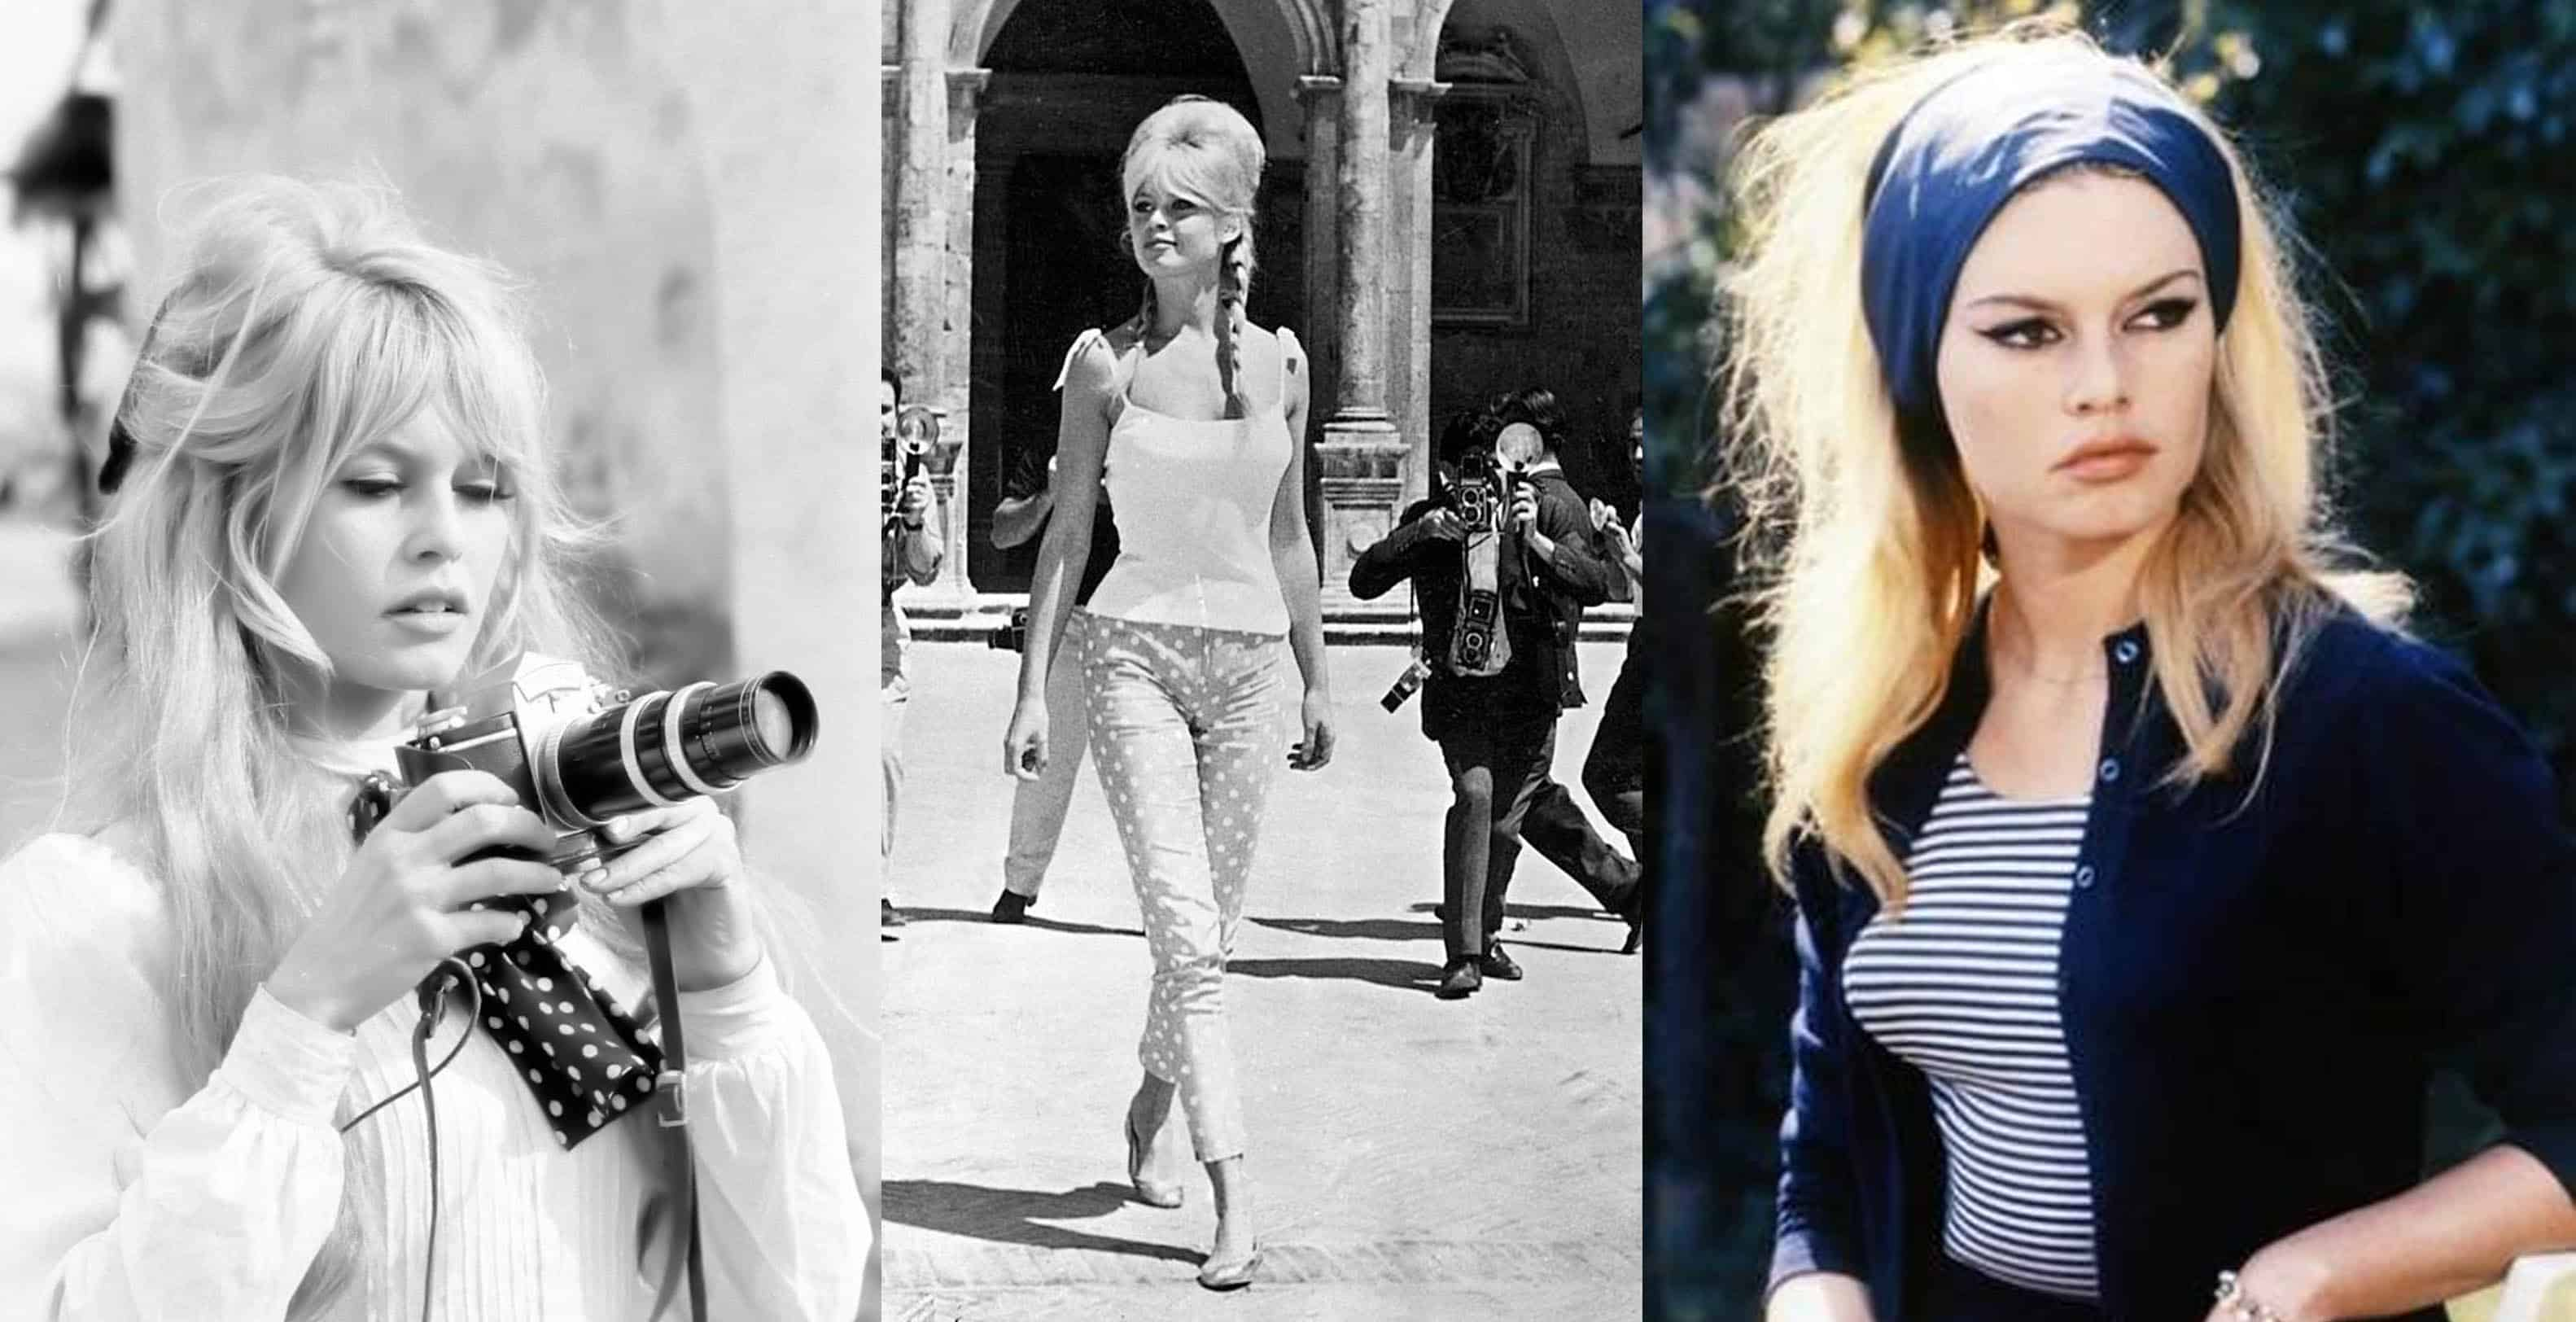 brigitte-bardot-60s-fashion